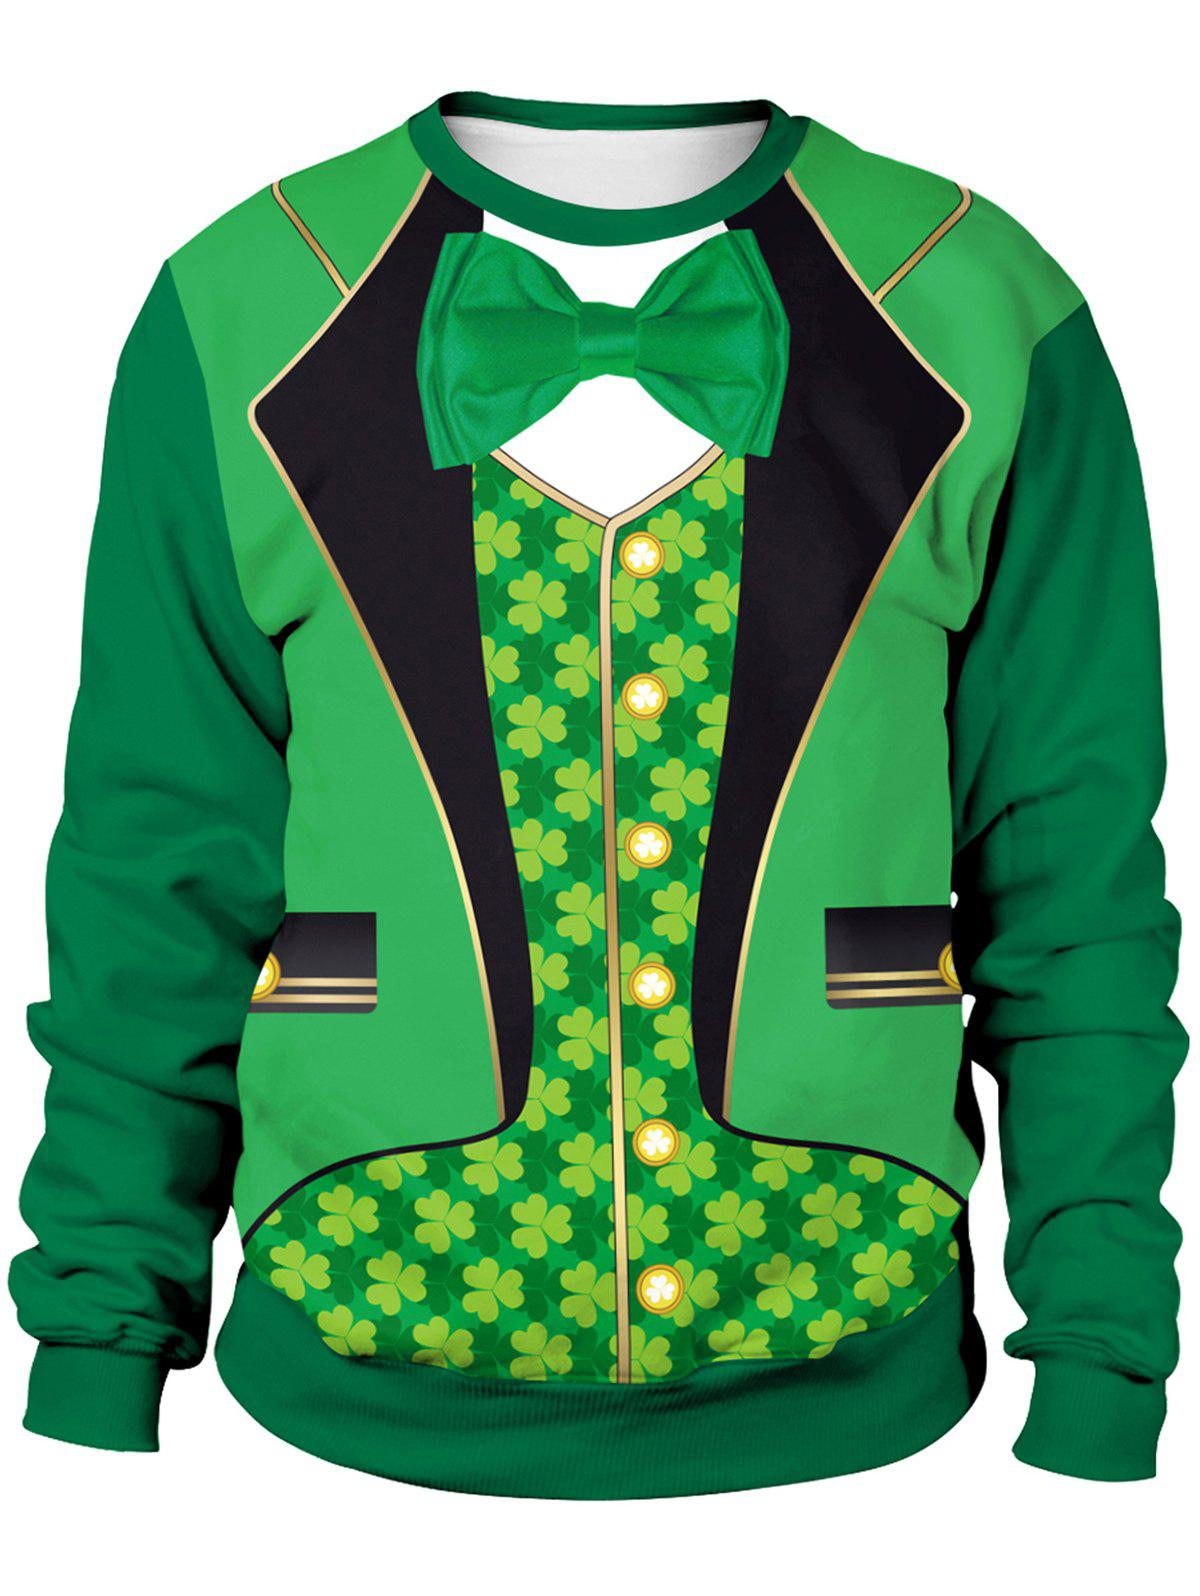 3D Four-leaf Clover Printed Pullover Sweatshirt - MEDIUM FOREST GREEN L